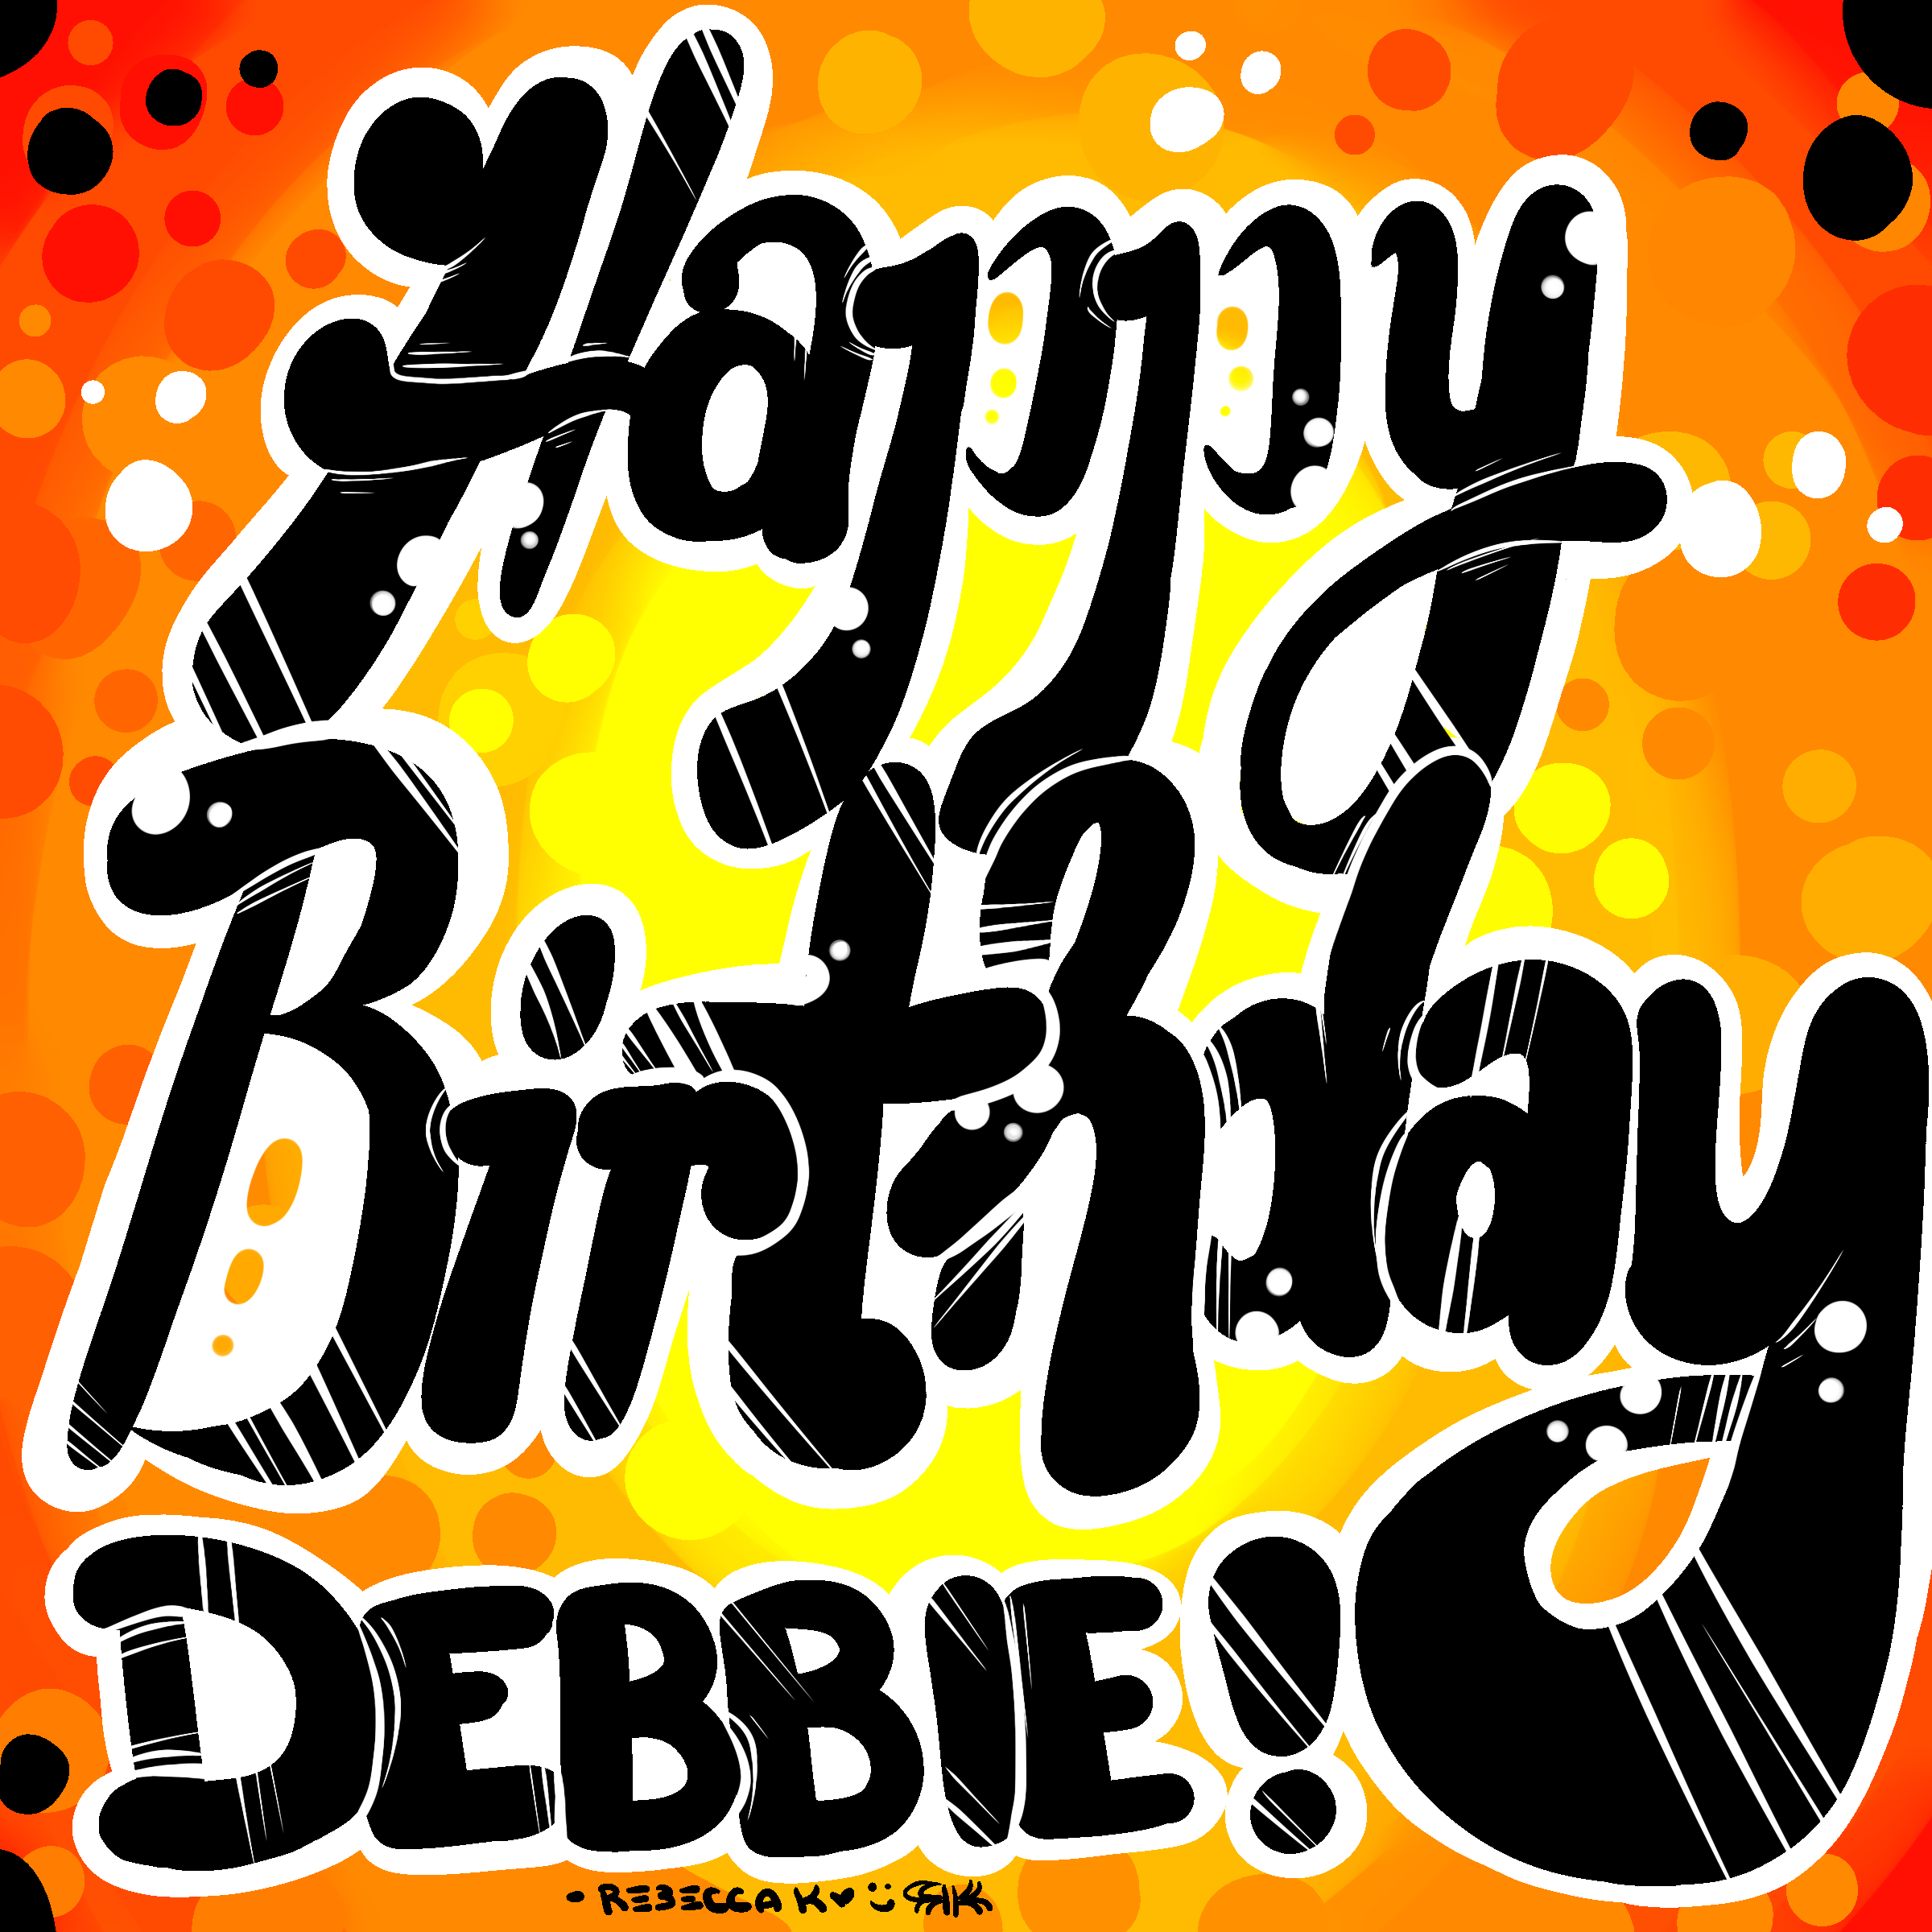 Happy Birthday Debbie By Bekoe On Newgrounds